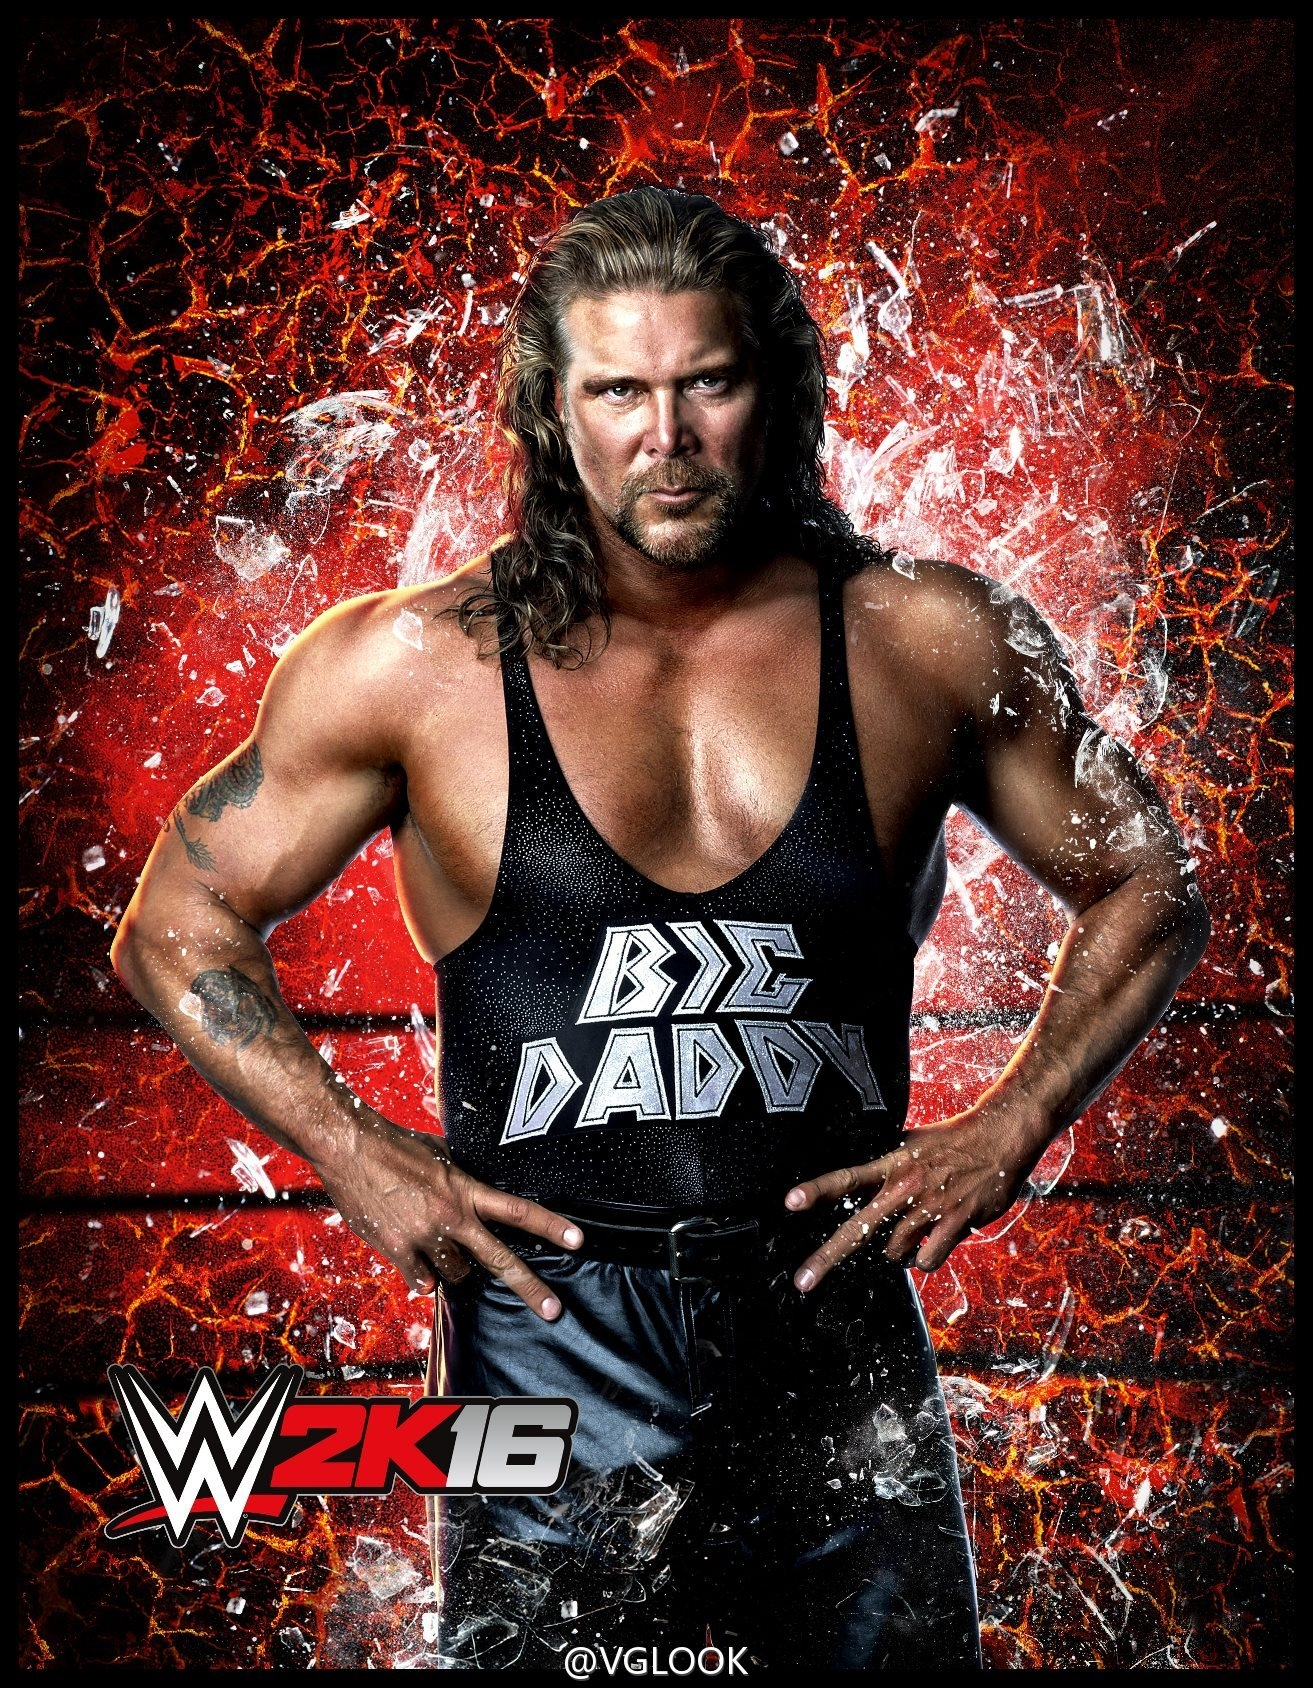 wwe diesel big daddy cool